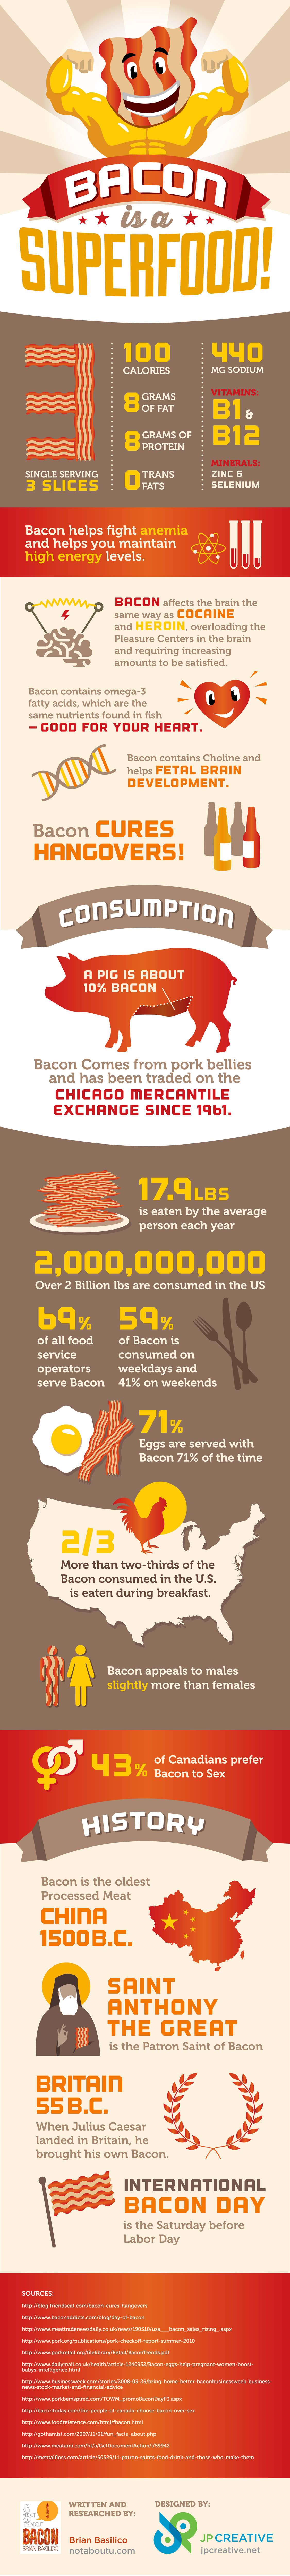 Bacon_Infographic